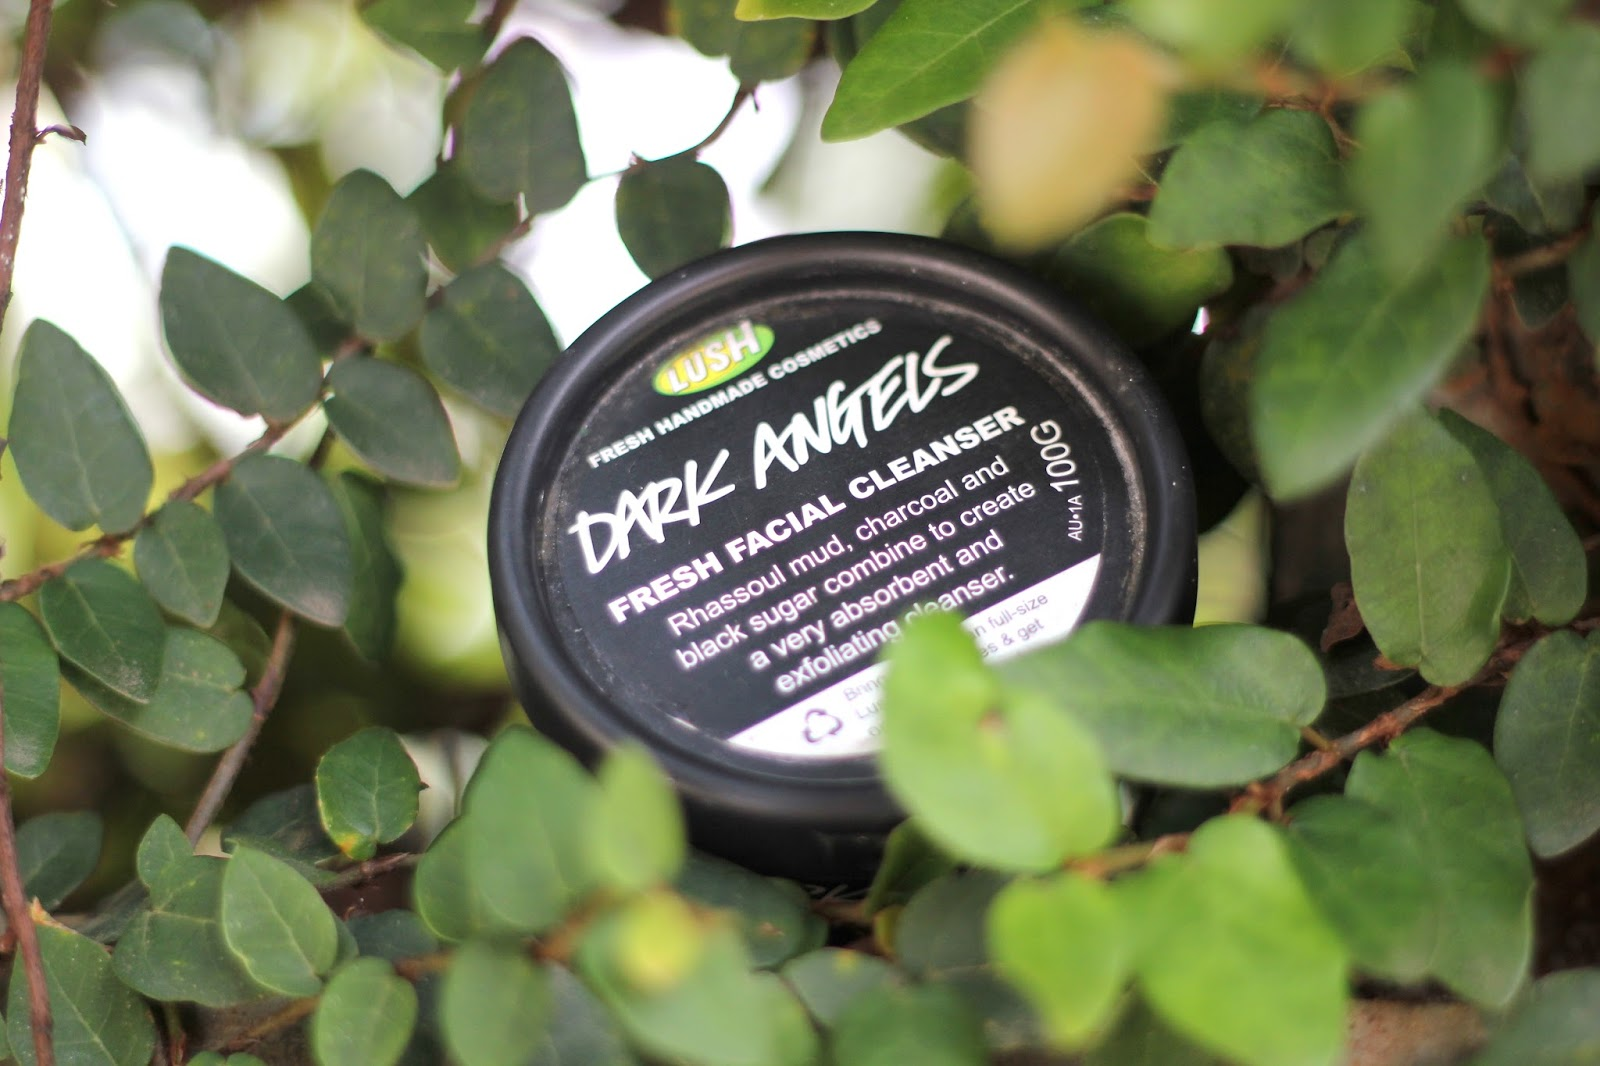 Lush Dark Angels Cleanser Review